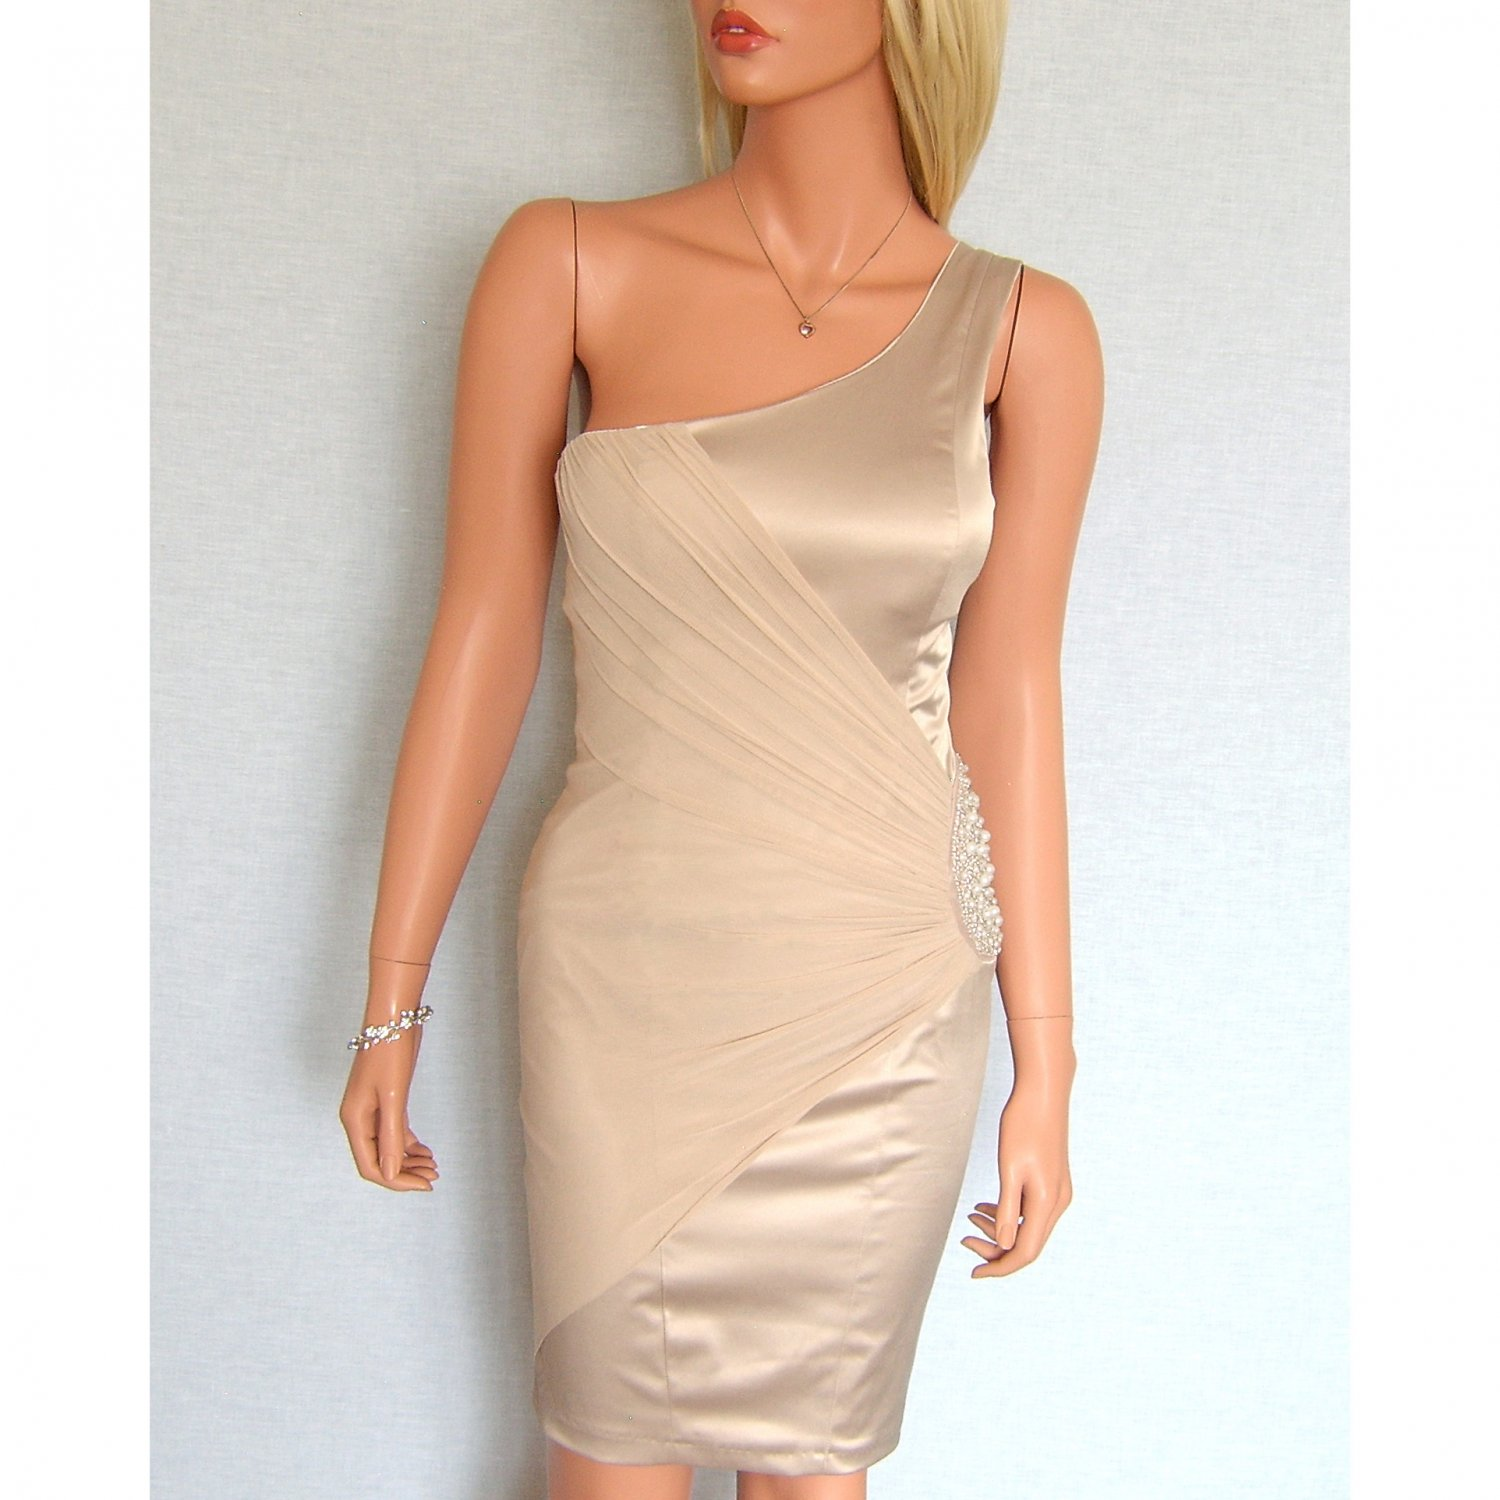 ELISE RYAN TOPSHOP NUDE PEARL BEADED EVENING BODYCON MINI COCKTAIL PARTY PROM DRESS UK 14, US 10